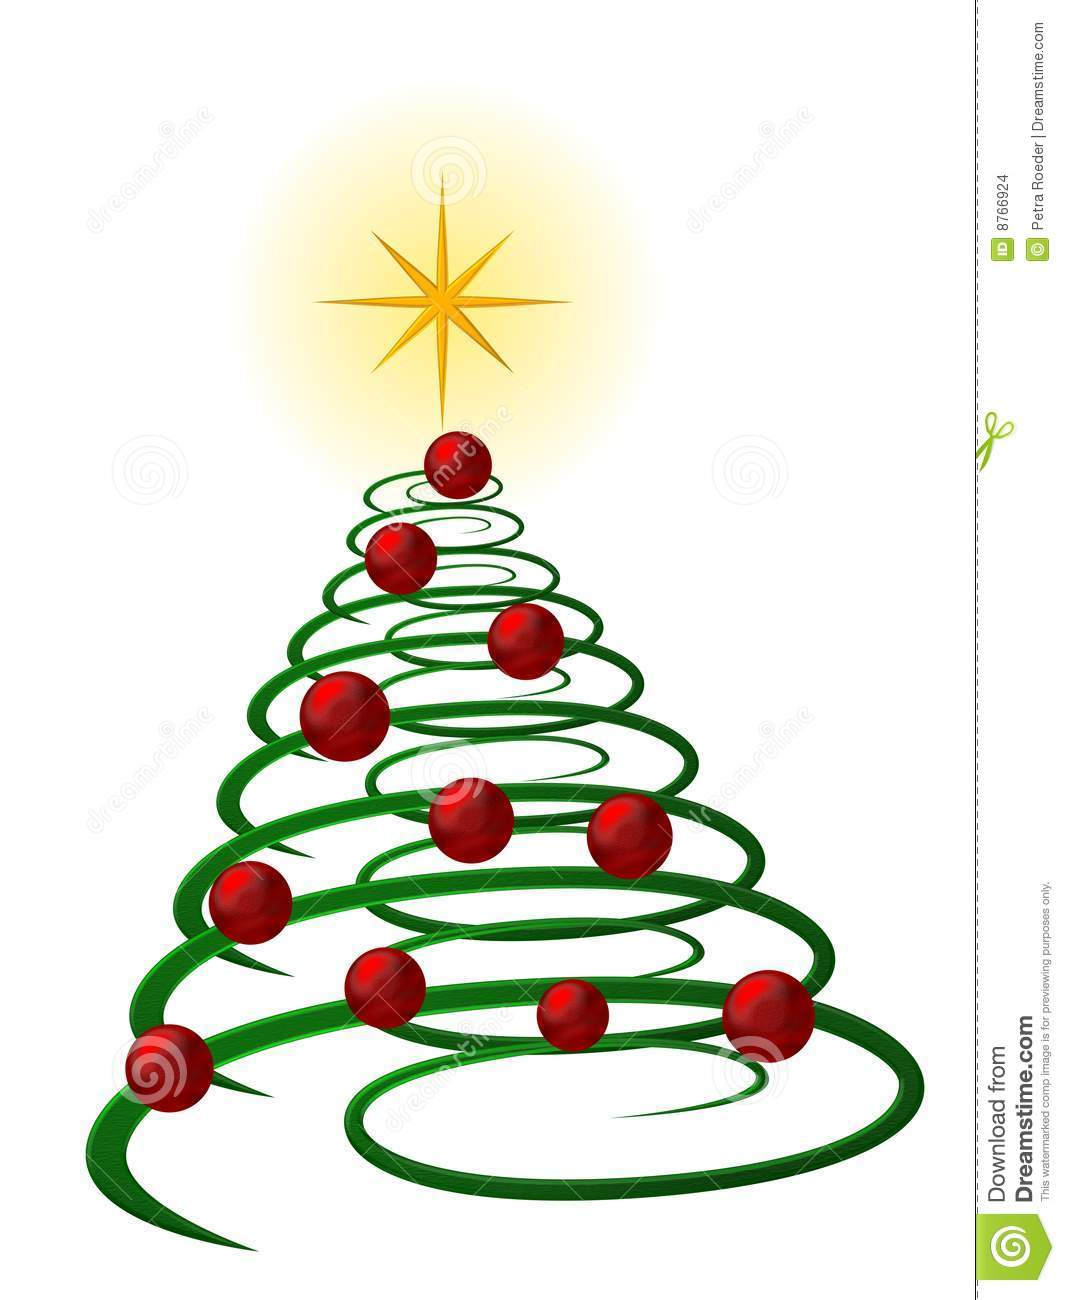 Stock Images Spiral Christmas Tree Image8766924 on Green Spiral Clip